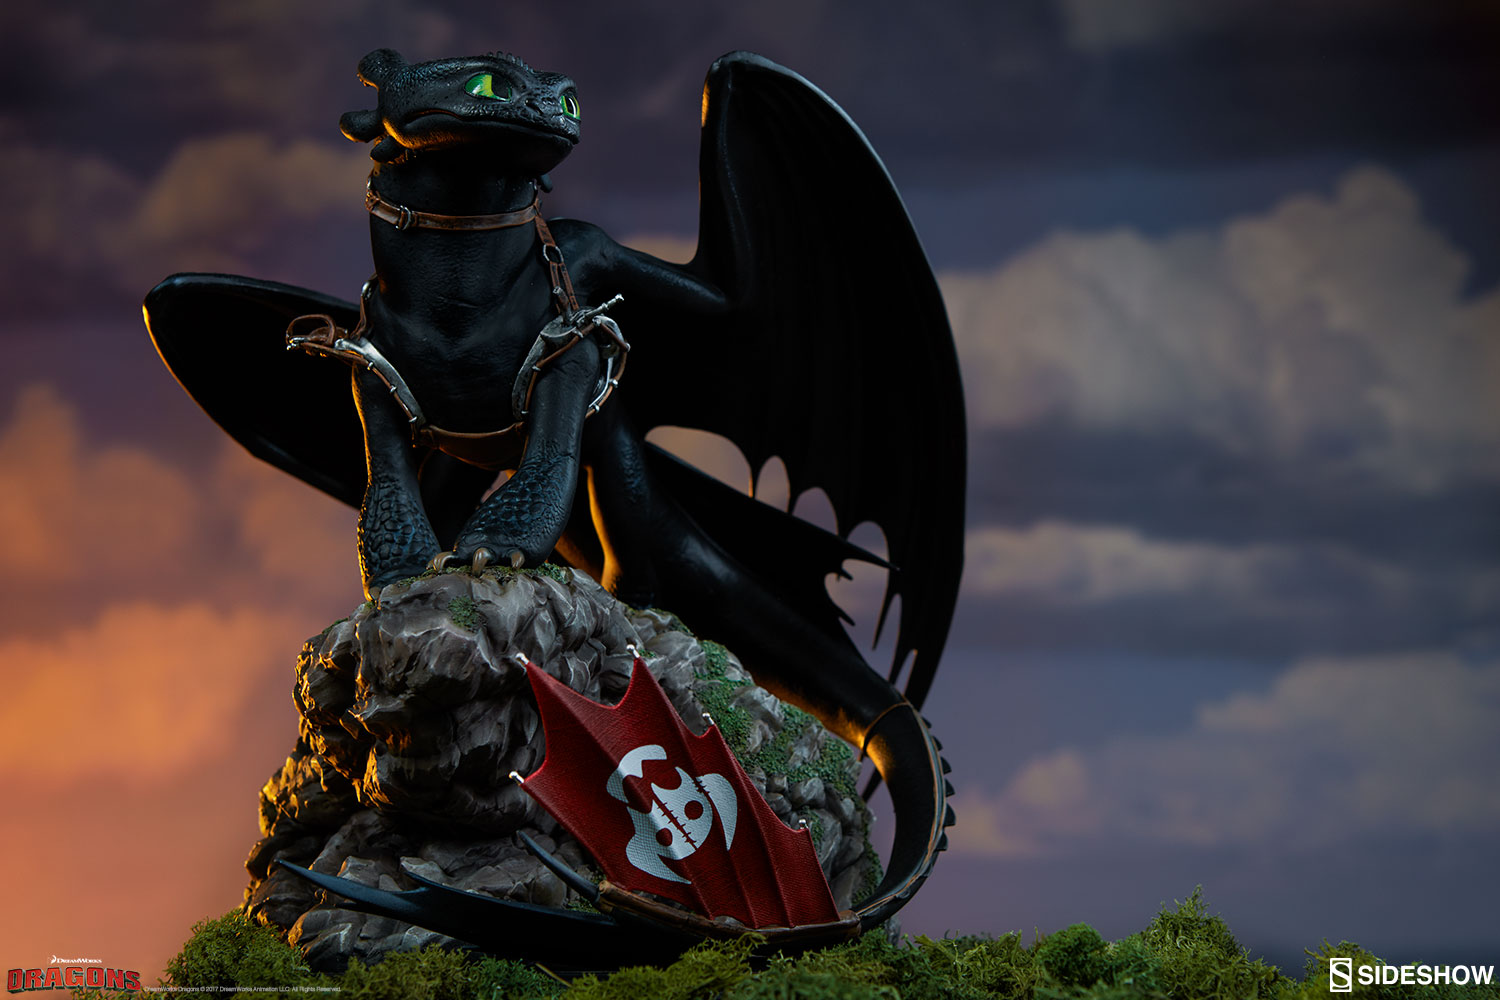 How to train your dragon toothless statue by sideshow collec sideshow collectibles - Image de dragon ...